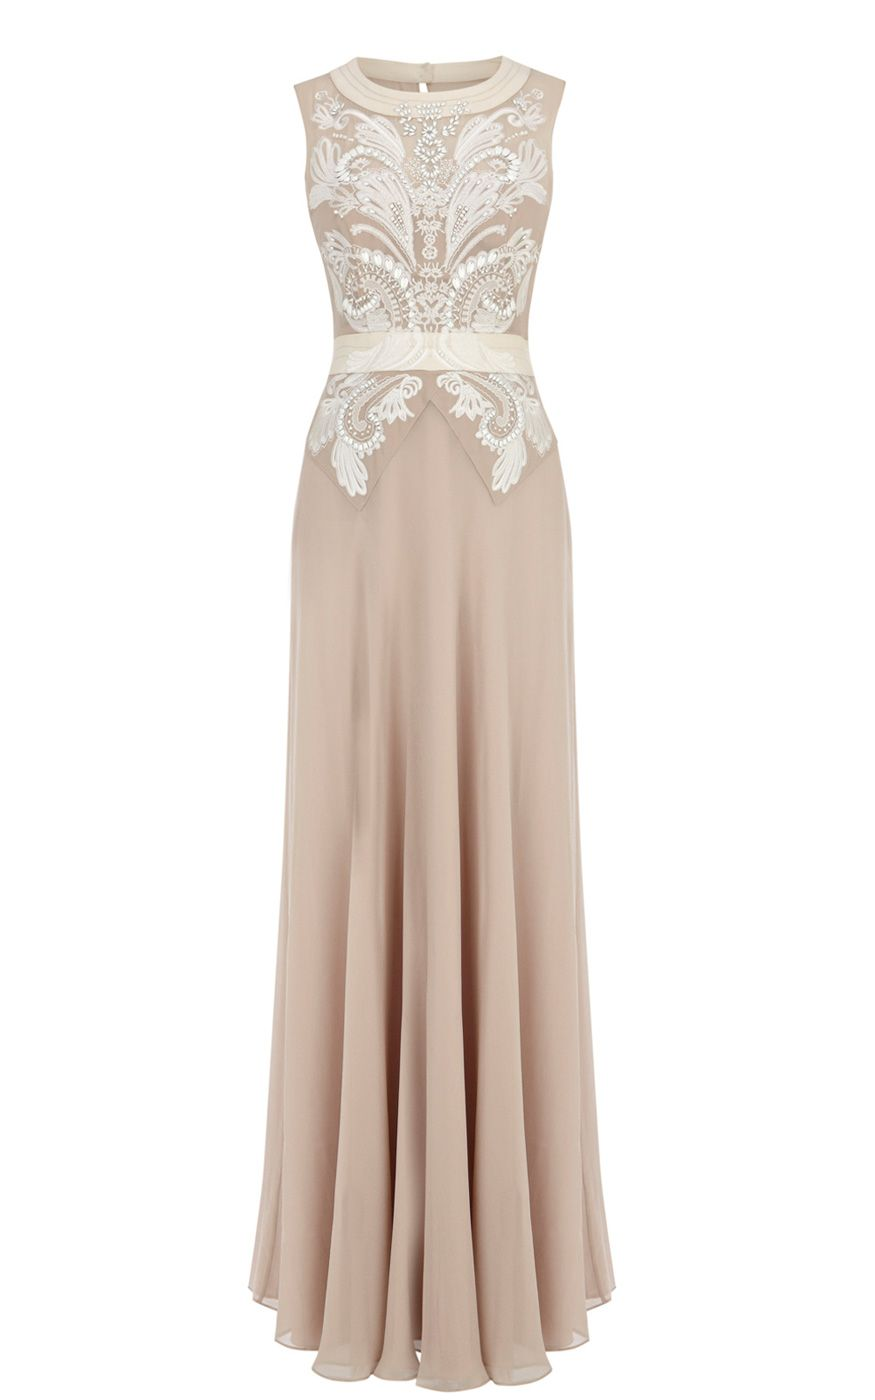 Karen Millen Evening Dresses